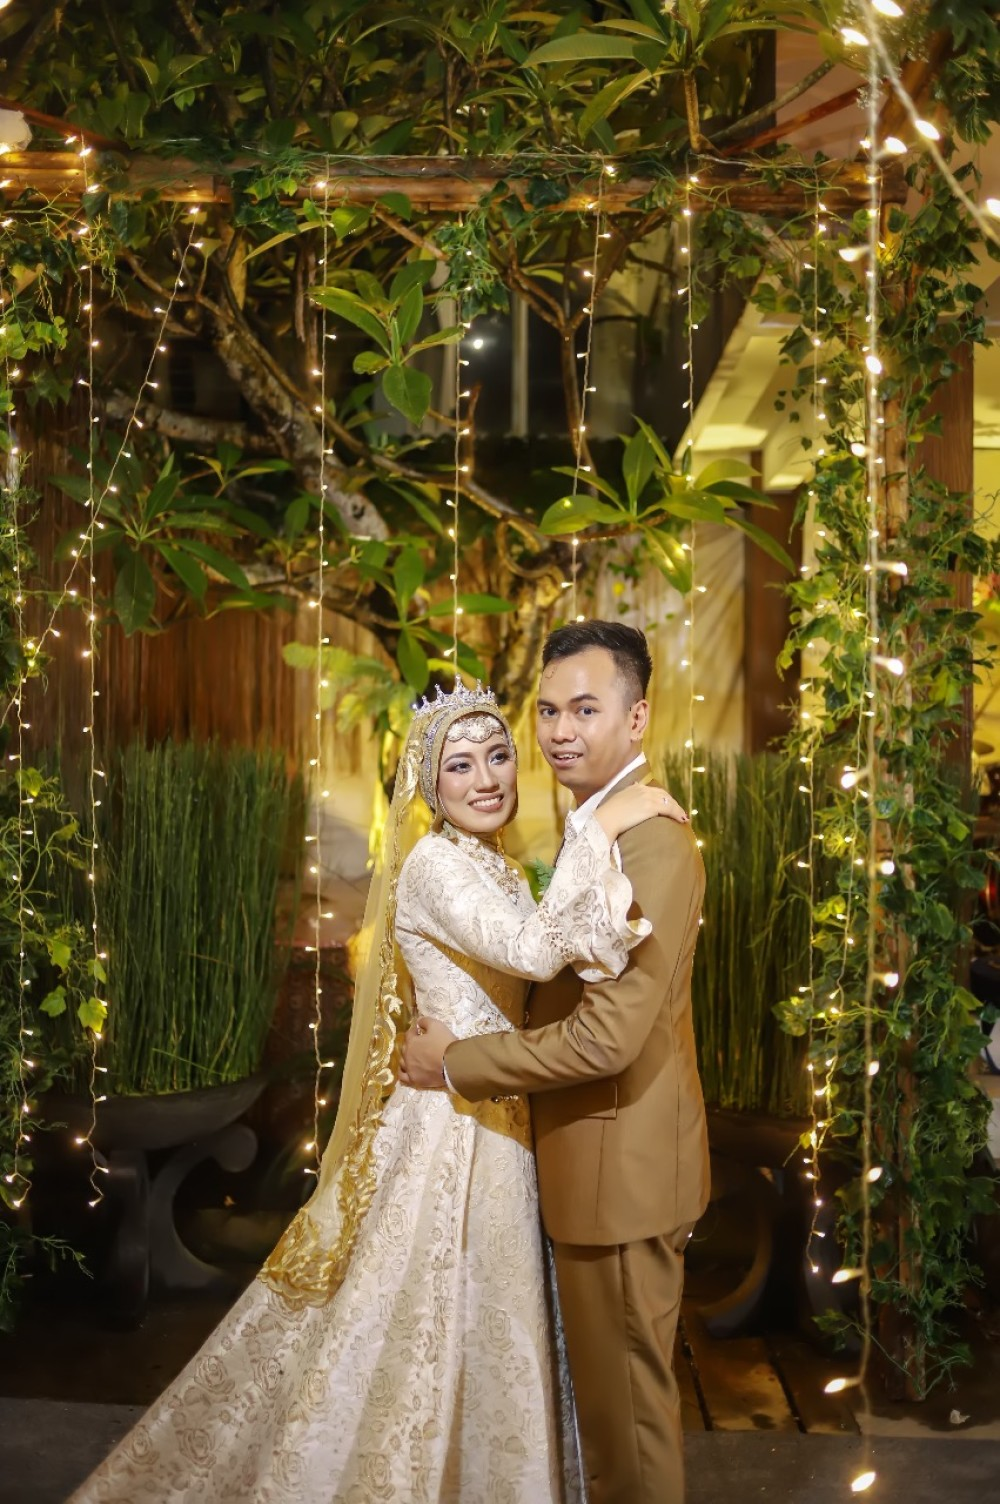 WEDDING RISTA DAN DAMAR 6